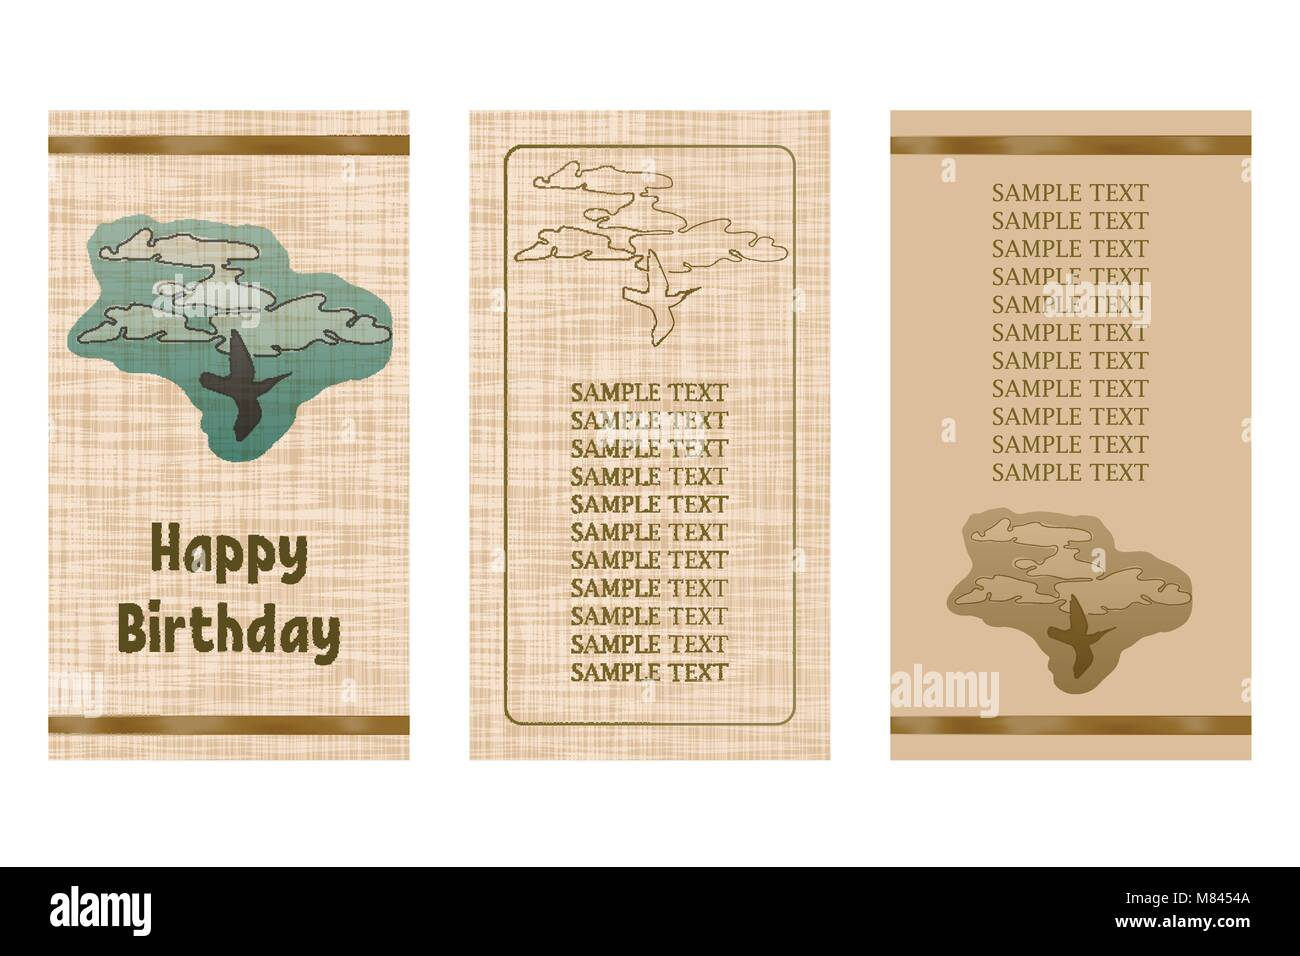 Happy Birthday Greeting Card Three Different Vector Patterns Stock